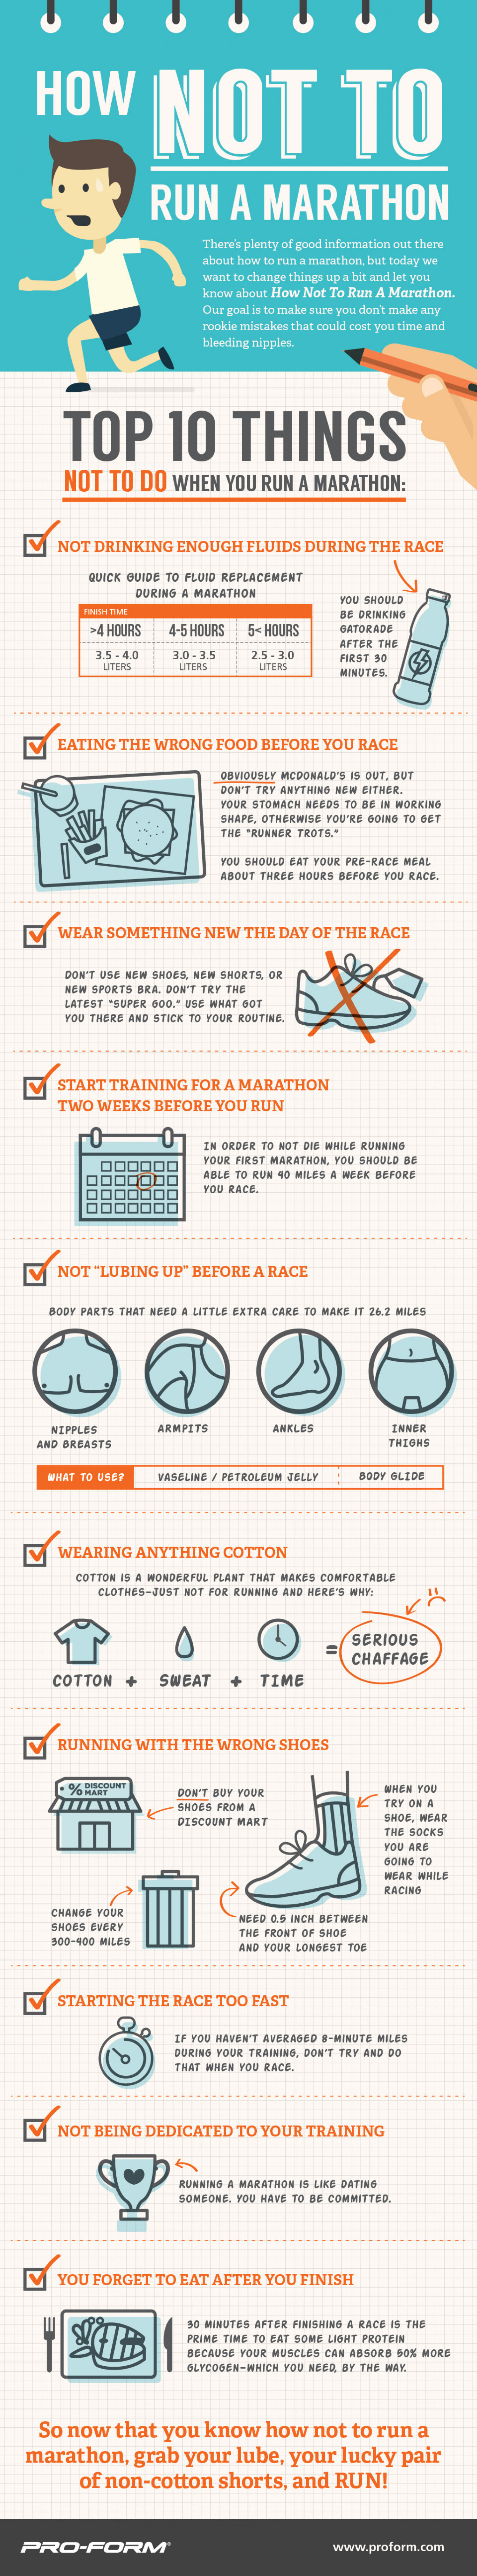 Cotton, Fast Food, and Pace: How NOT to Run a Marathon Infographic